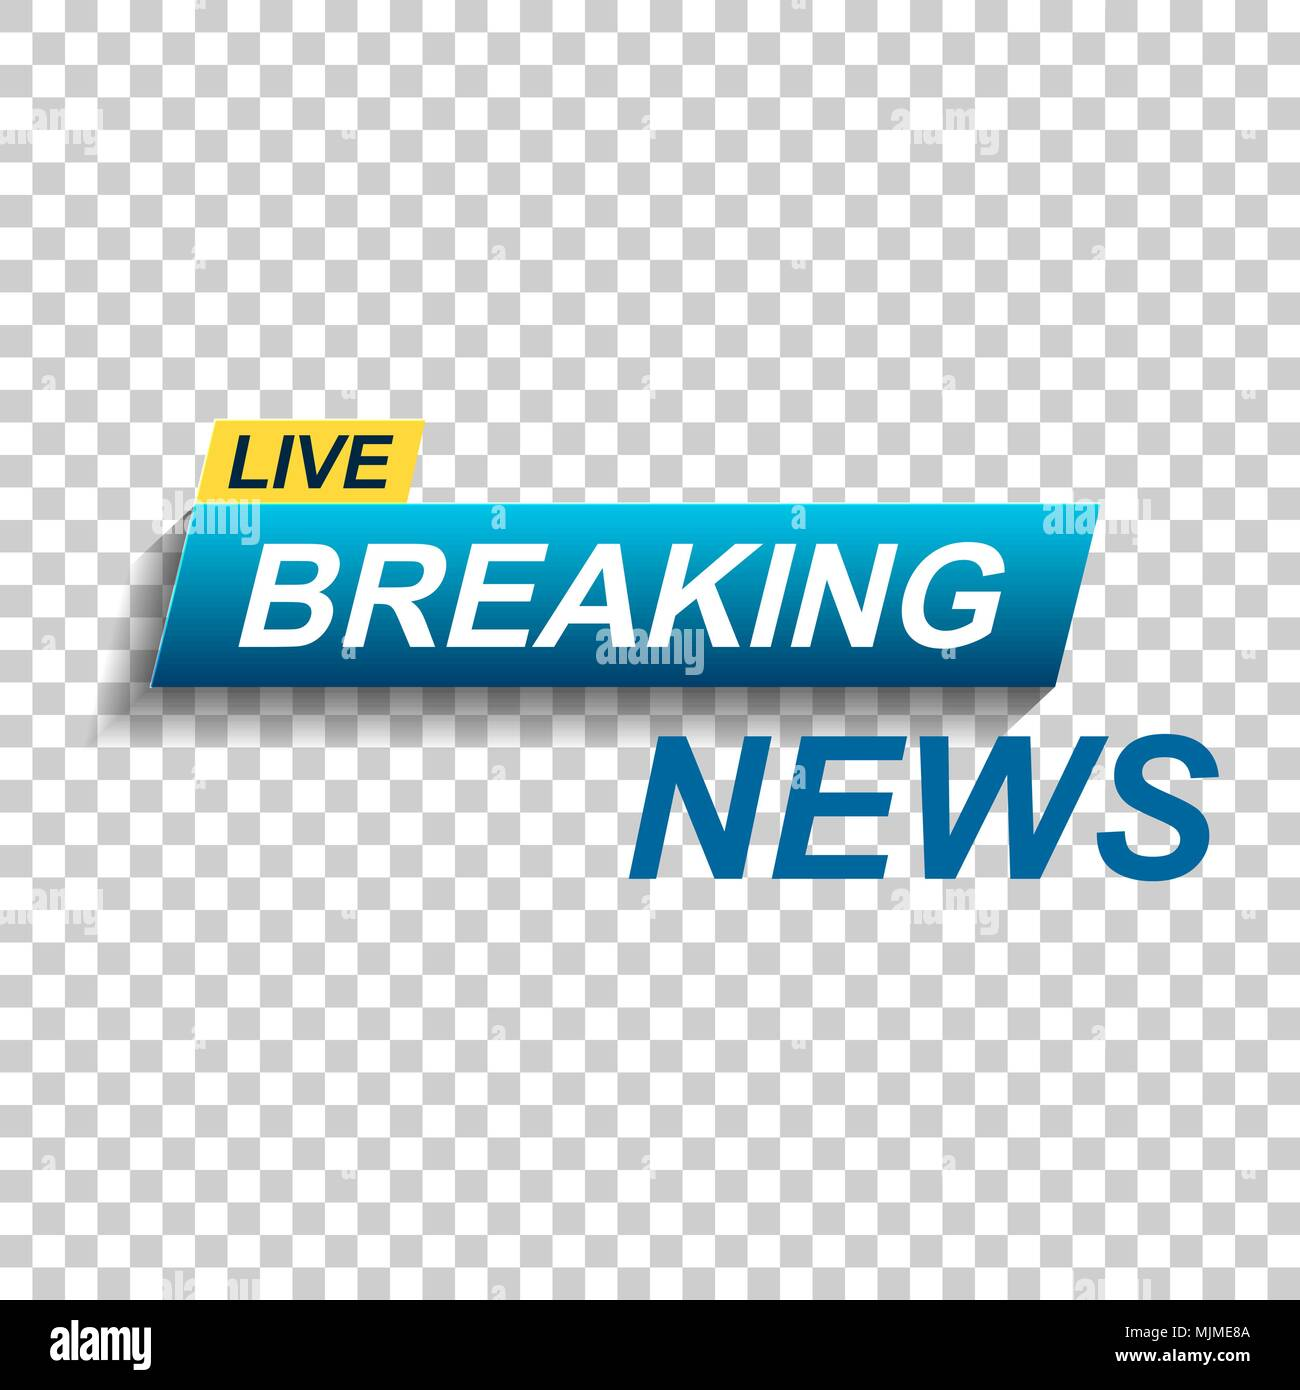 Breaking News Vector Icon Flat Illustration Communication Business Concept Pictogram On Isolated Transparent Background